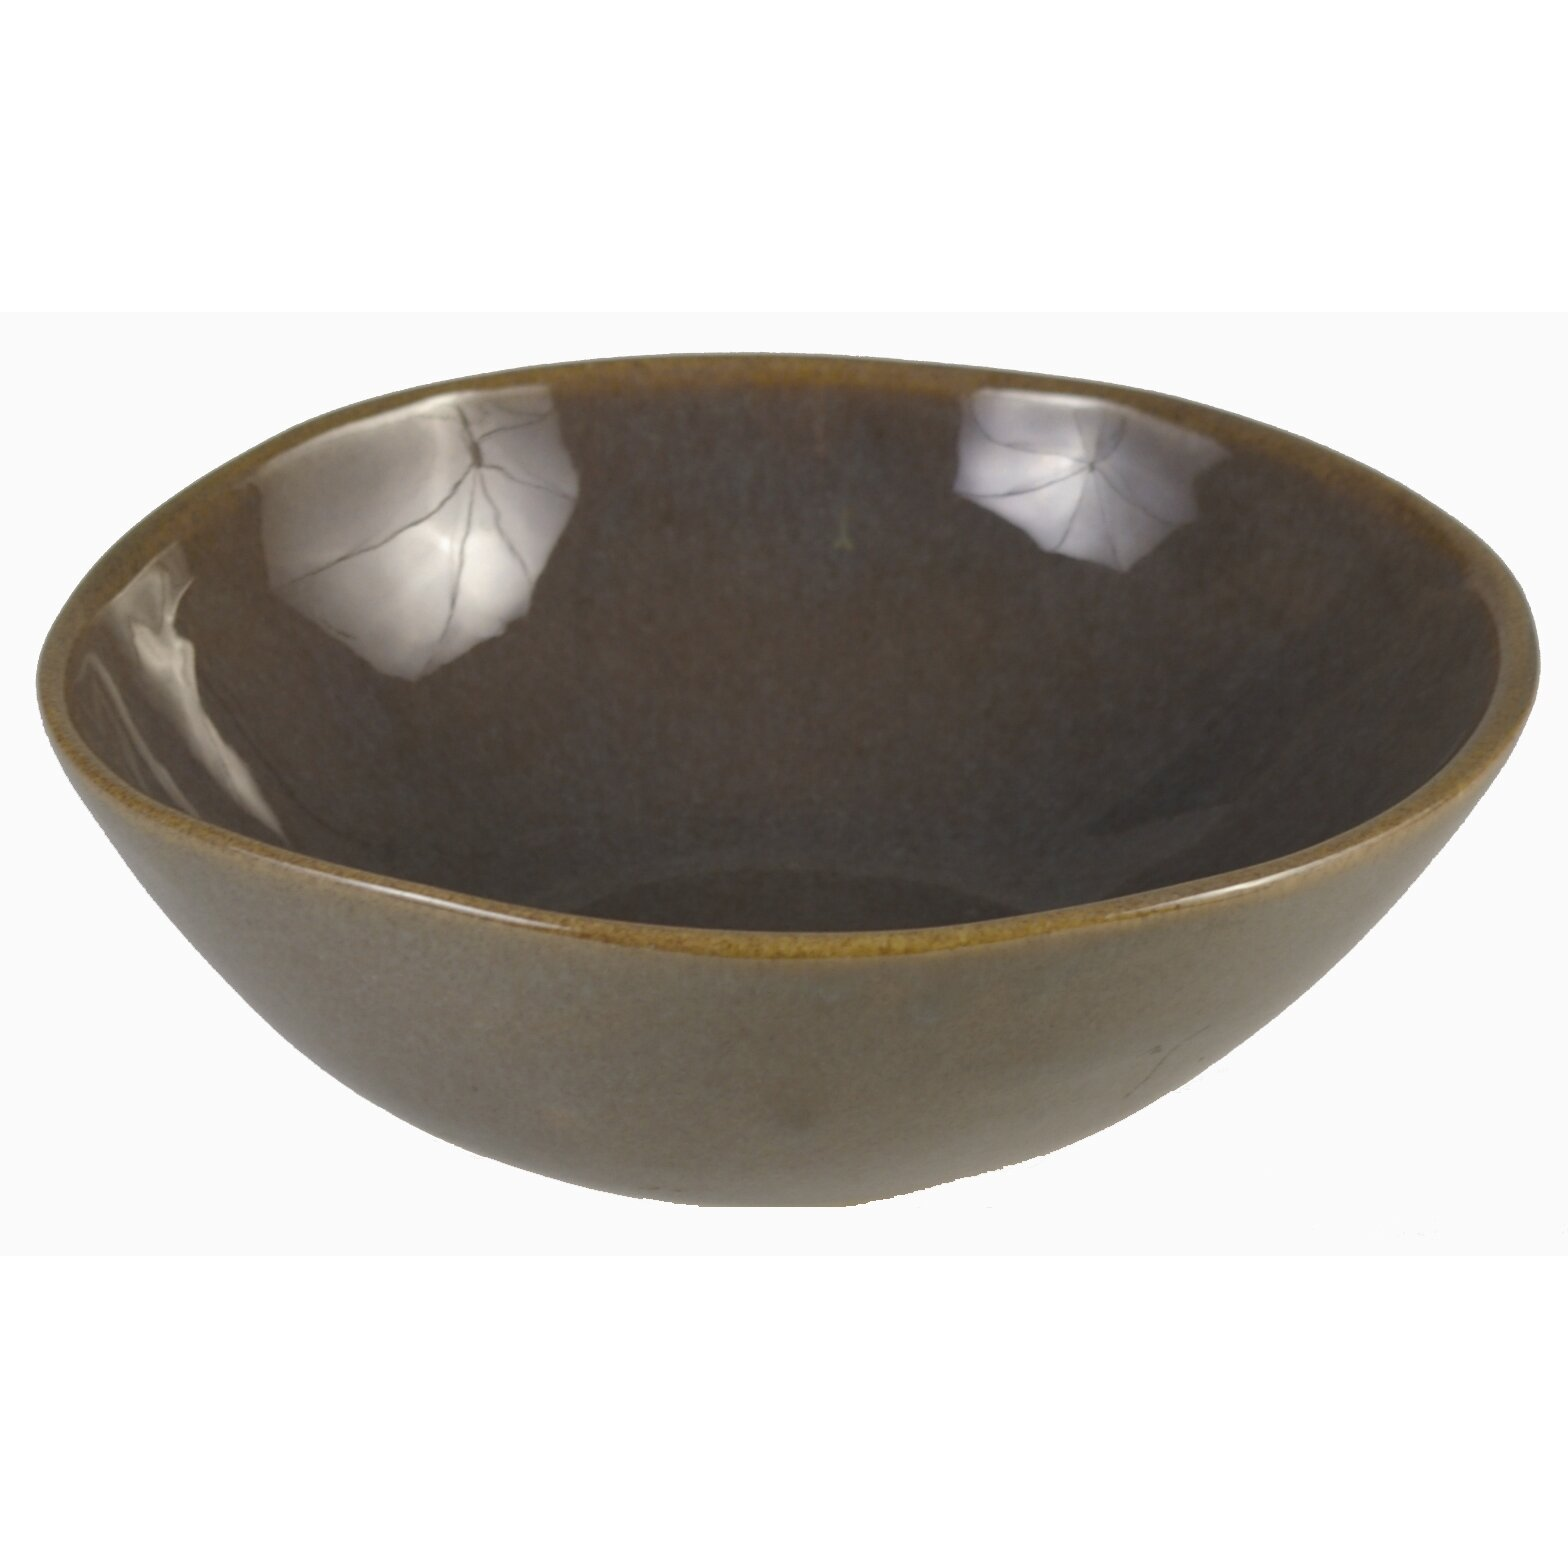 alex marshall studios 8 oz slim bowl allmodern